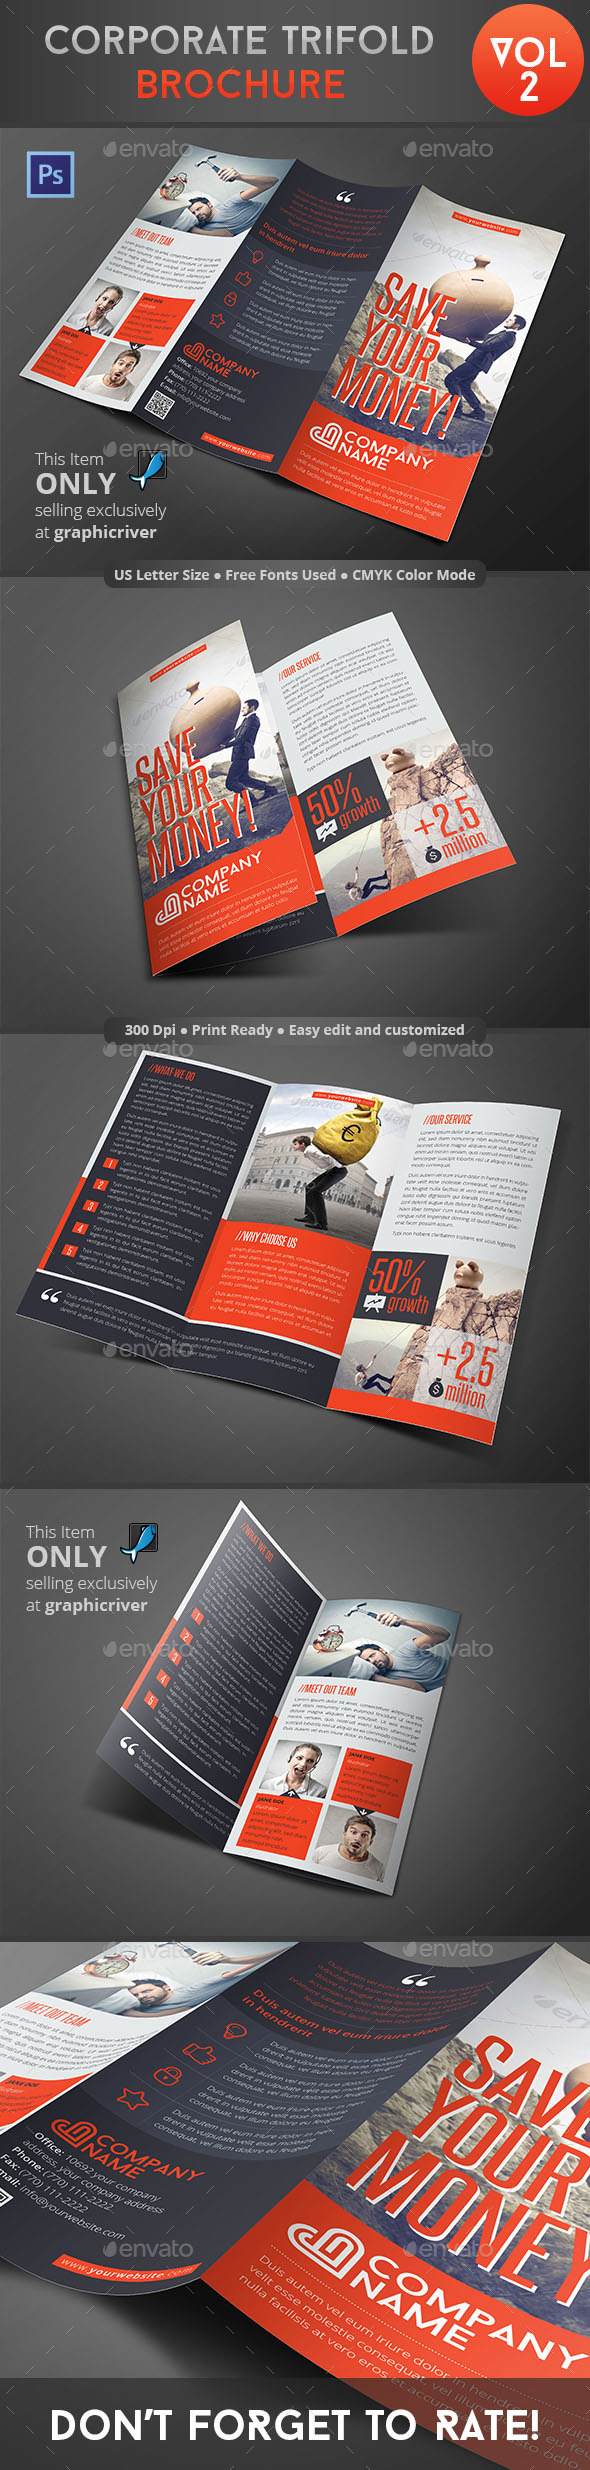 GraphicRiver Corporate Trifold Brochure Vol 2 8953109